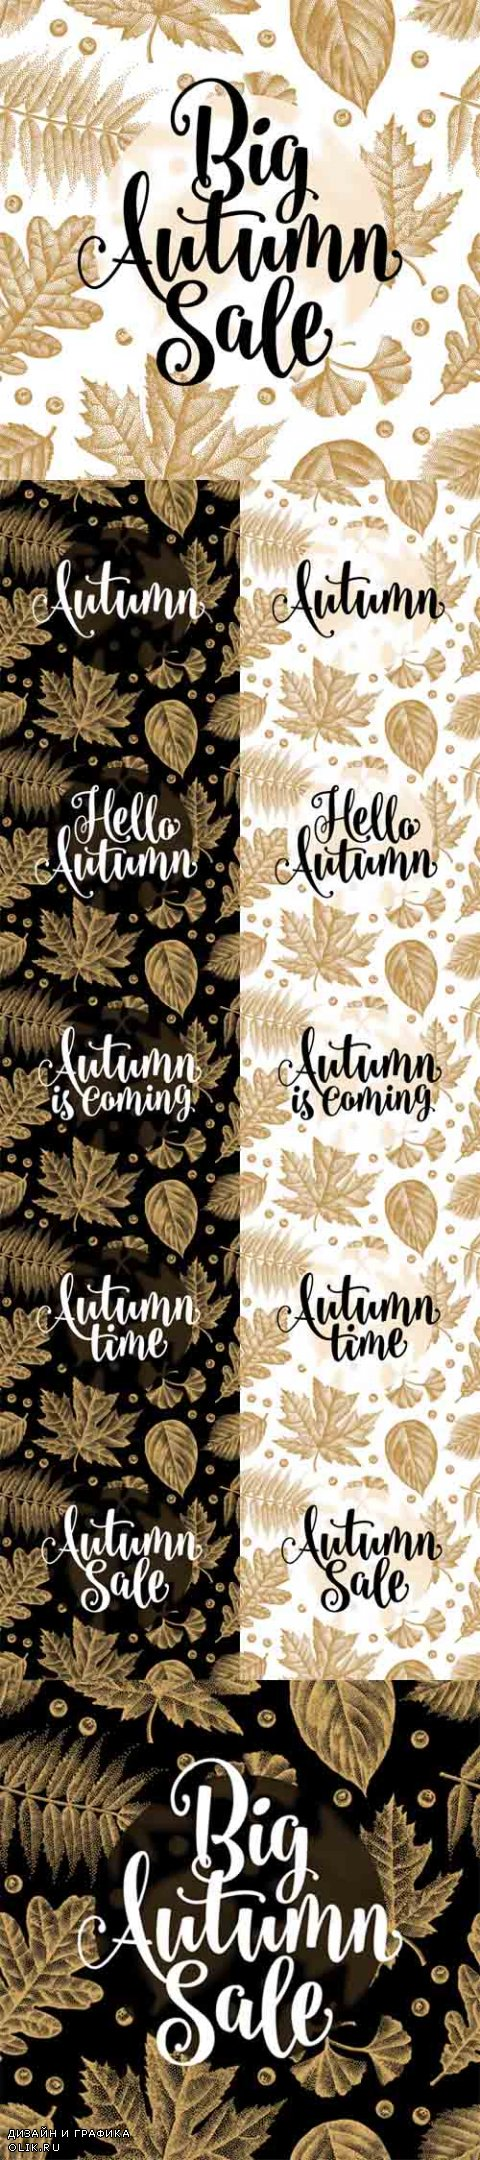 Vector Autumn Sale Calligraphy Phrases on Leaves Background